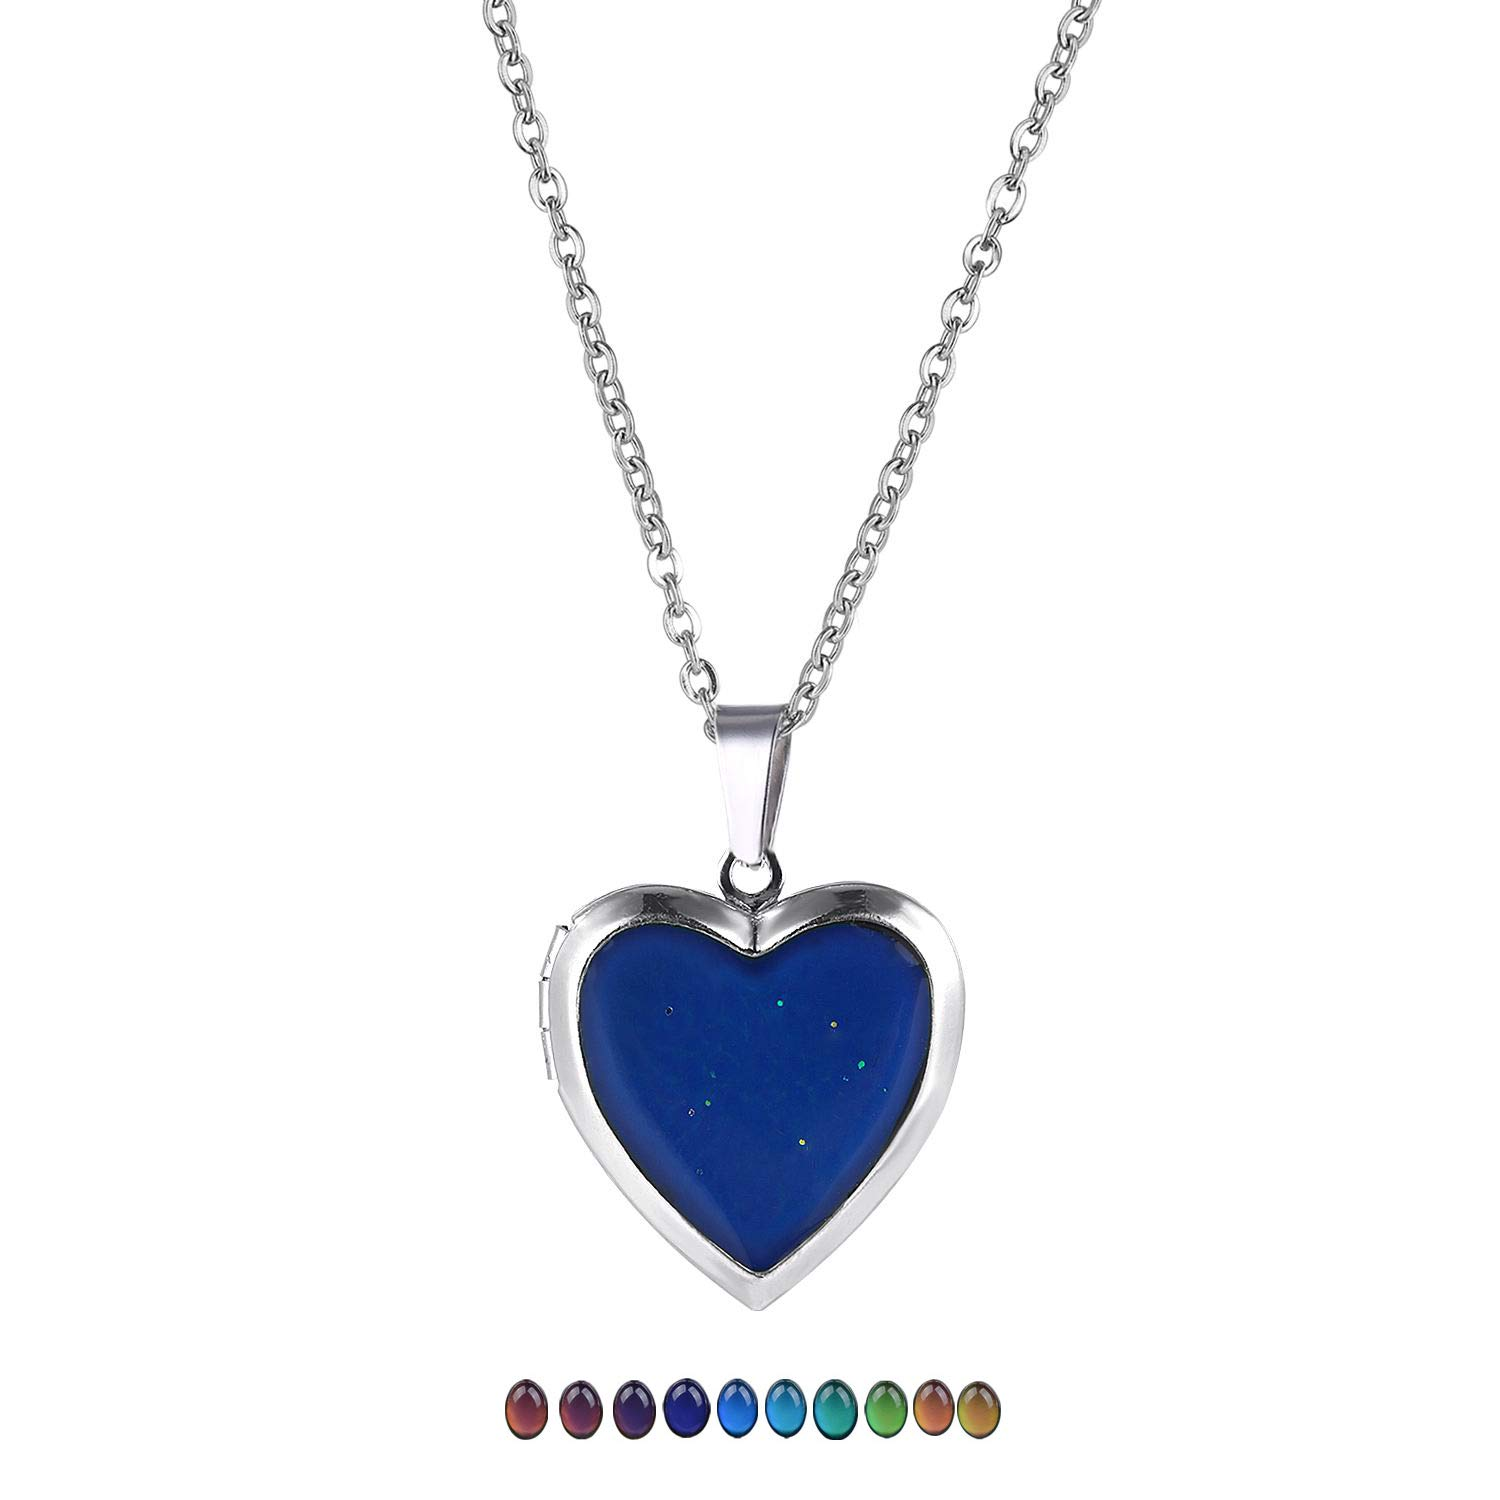 FM FM42 Temperature Sensing Color Changing Heart Openable Locket Pendant Necklace with 19.29 Stainless Steel Rolo Chain ZN1130